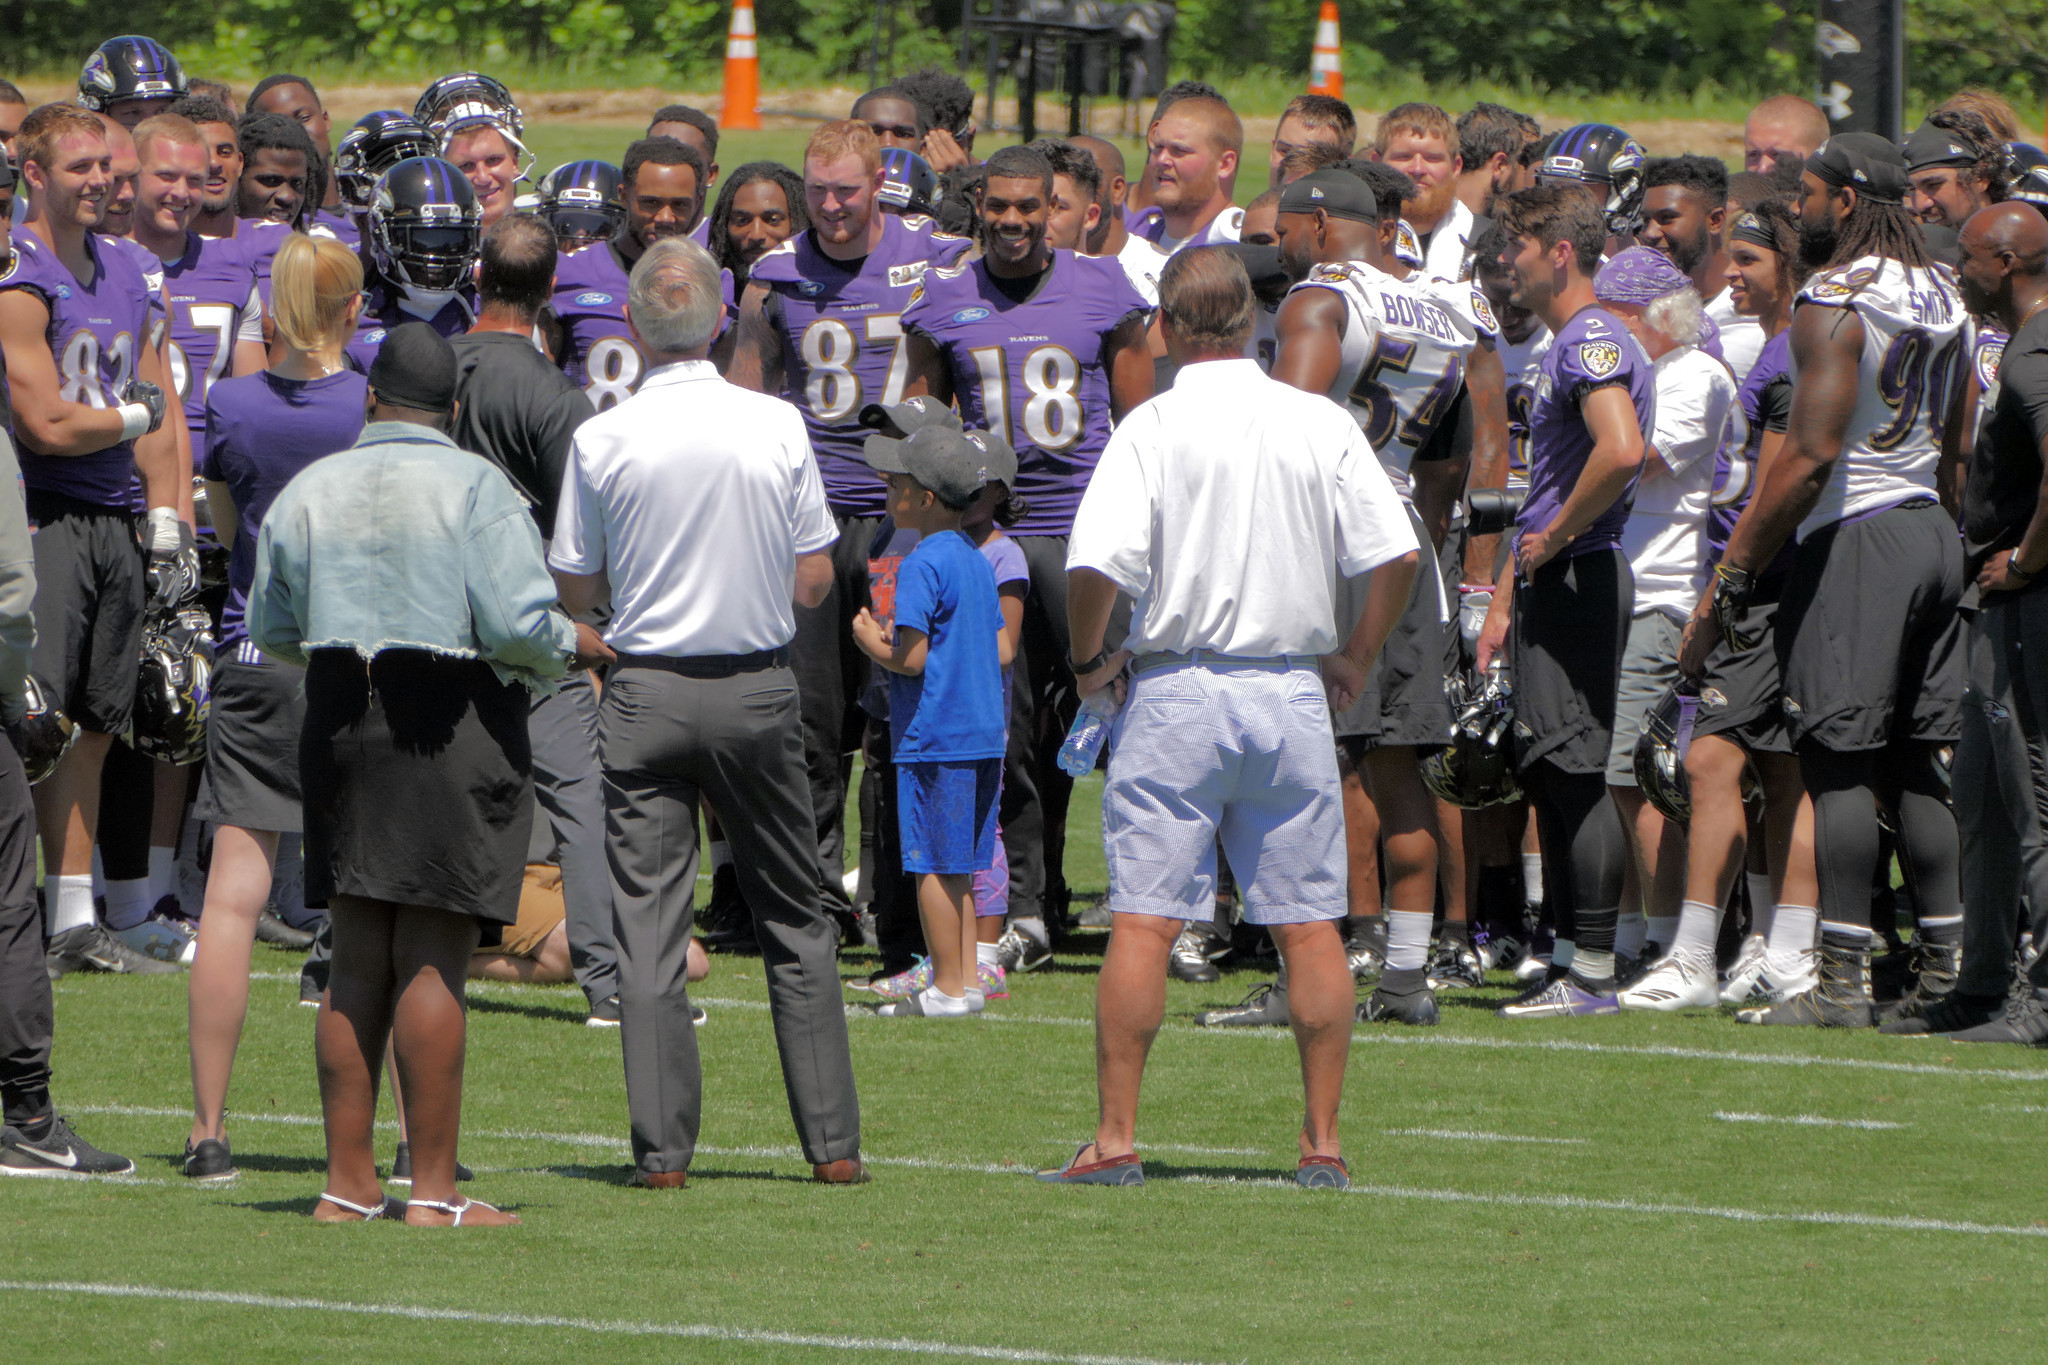 Bal-ravens-position-by-position-roster-breakdown-heading-into-training-camp-20180707